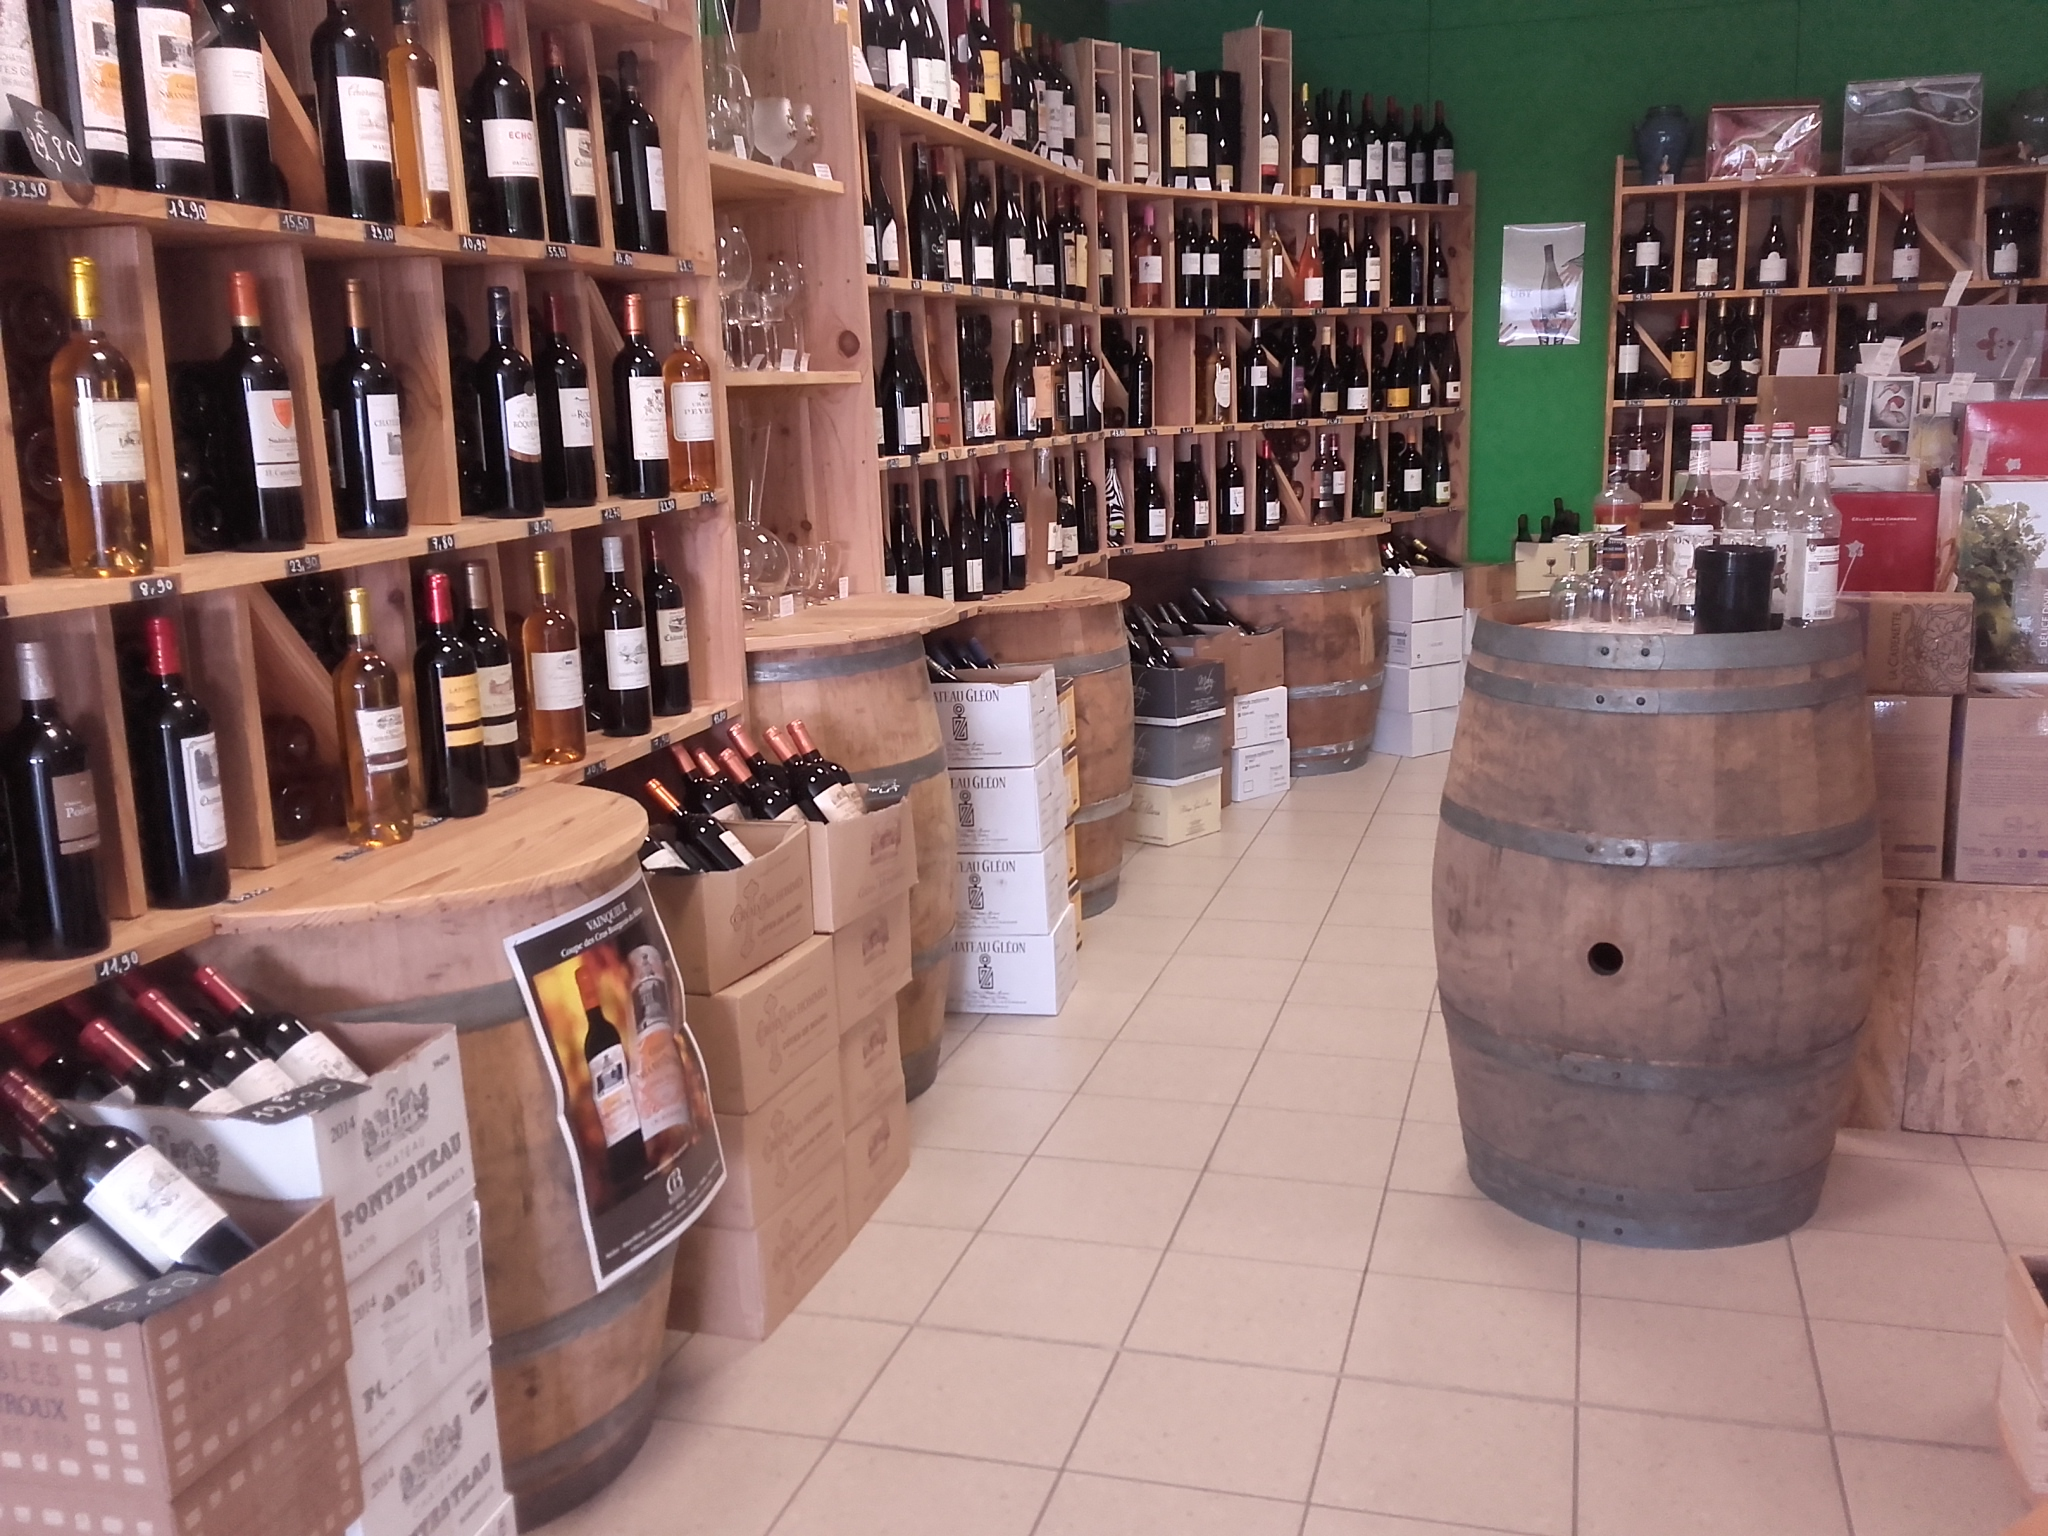 Vins de la cave de l'authion